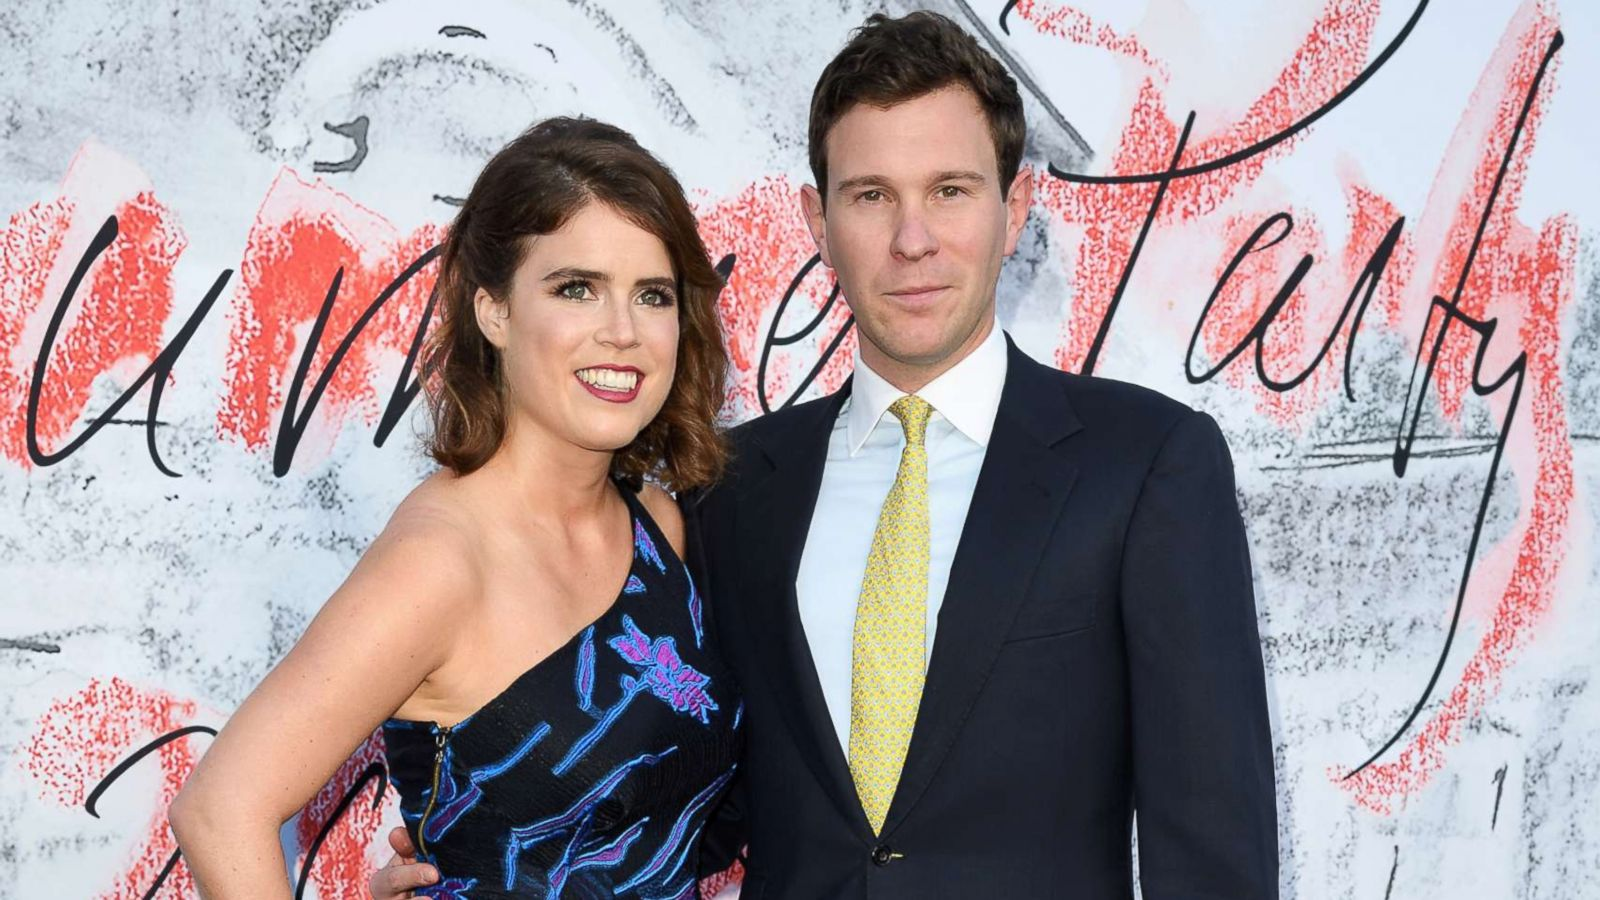 Princess Eugenie Wedding Televised.Everything You Need To Know About The Next Royal Wedding Princess